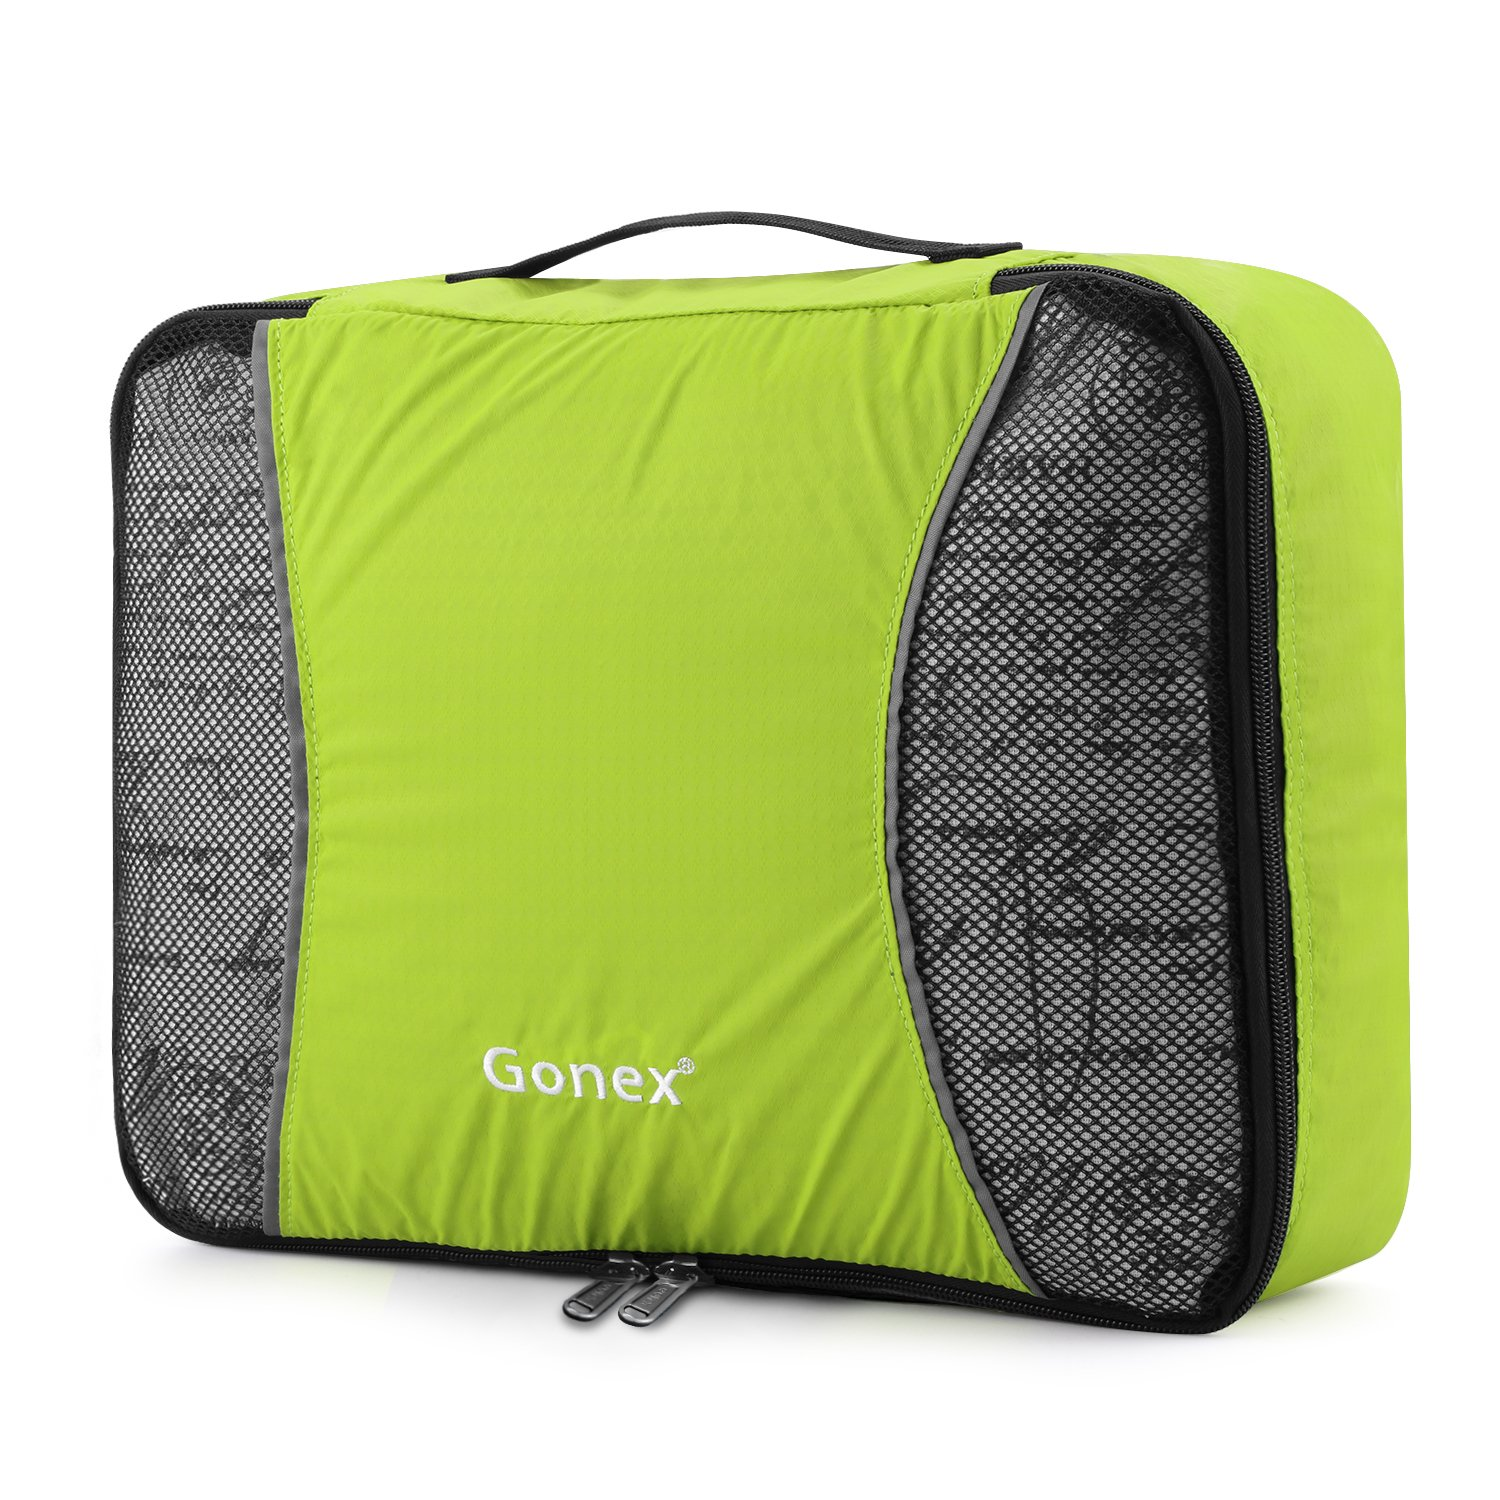 3Pcs//Set Men Travel Bag Packing Cube Clothes Pouch Foldable Duffle Bag Large Capacity Organizer Trip Accessories,Green